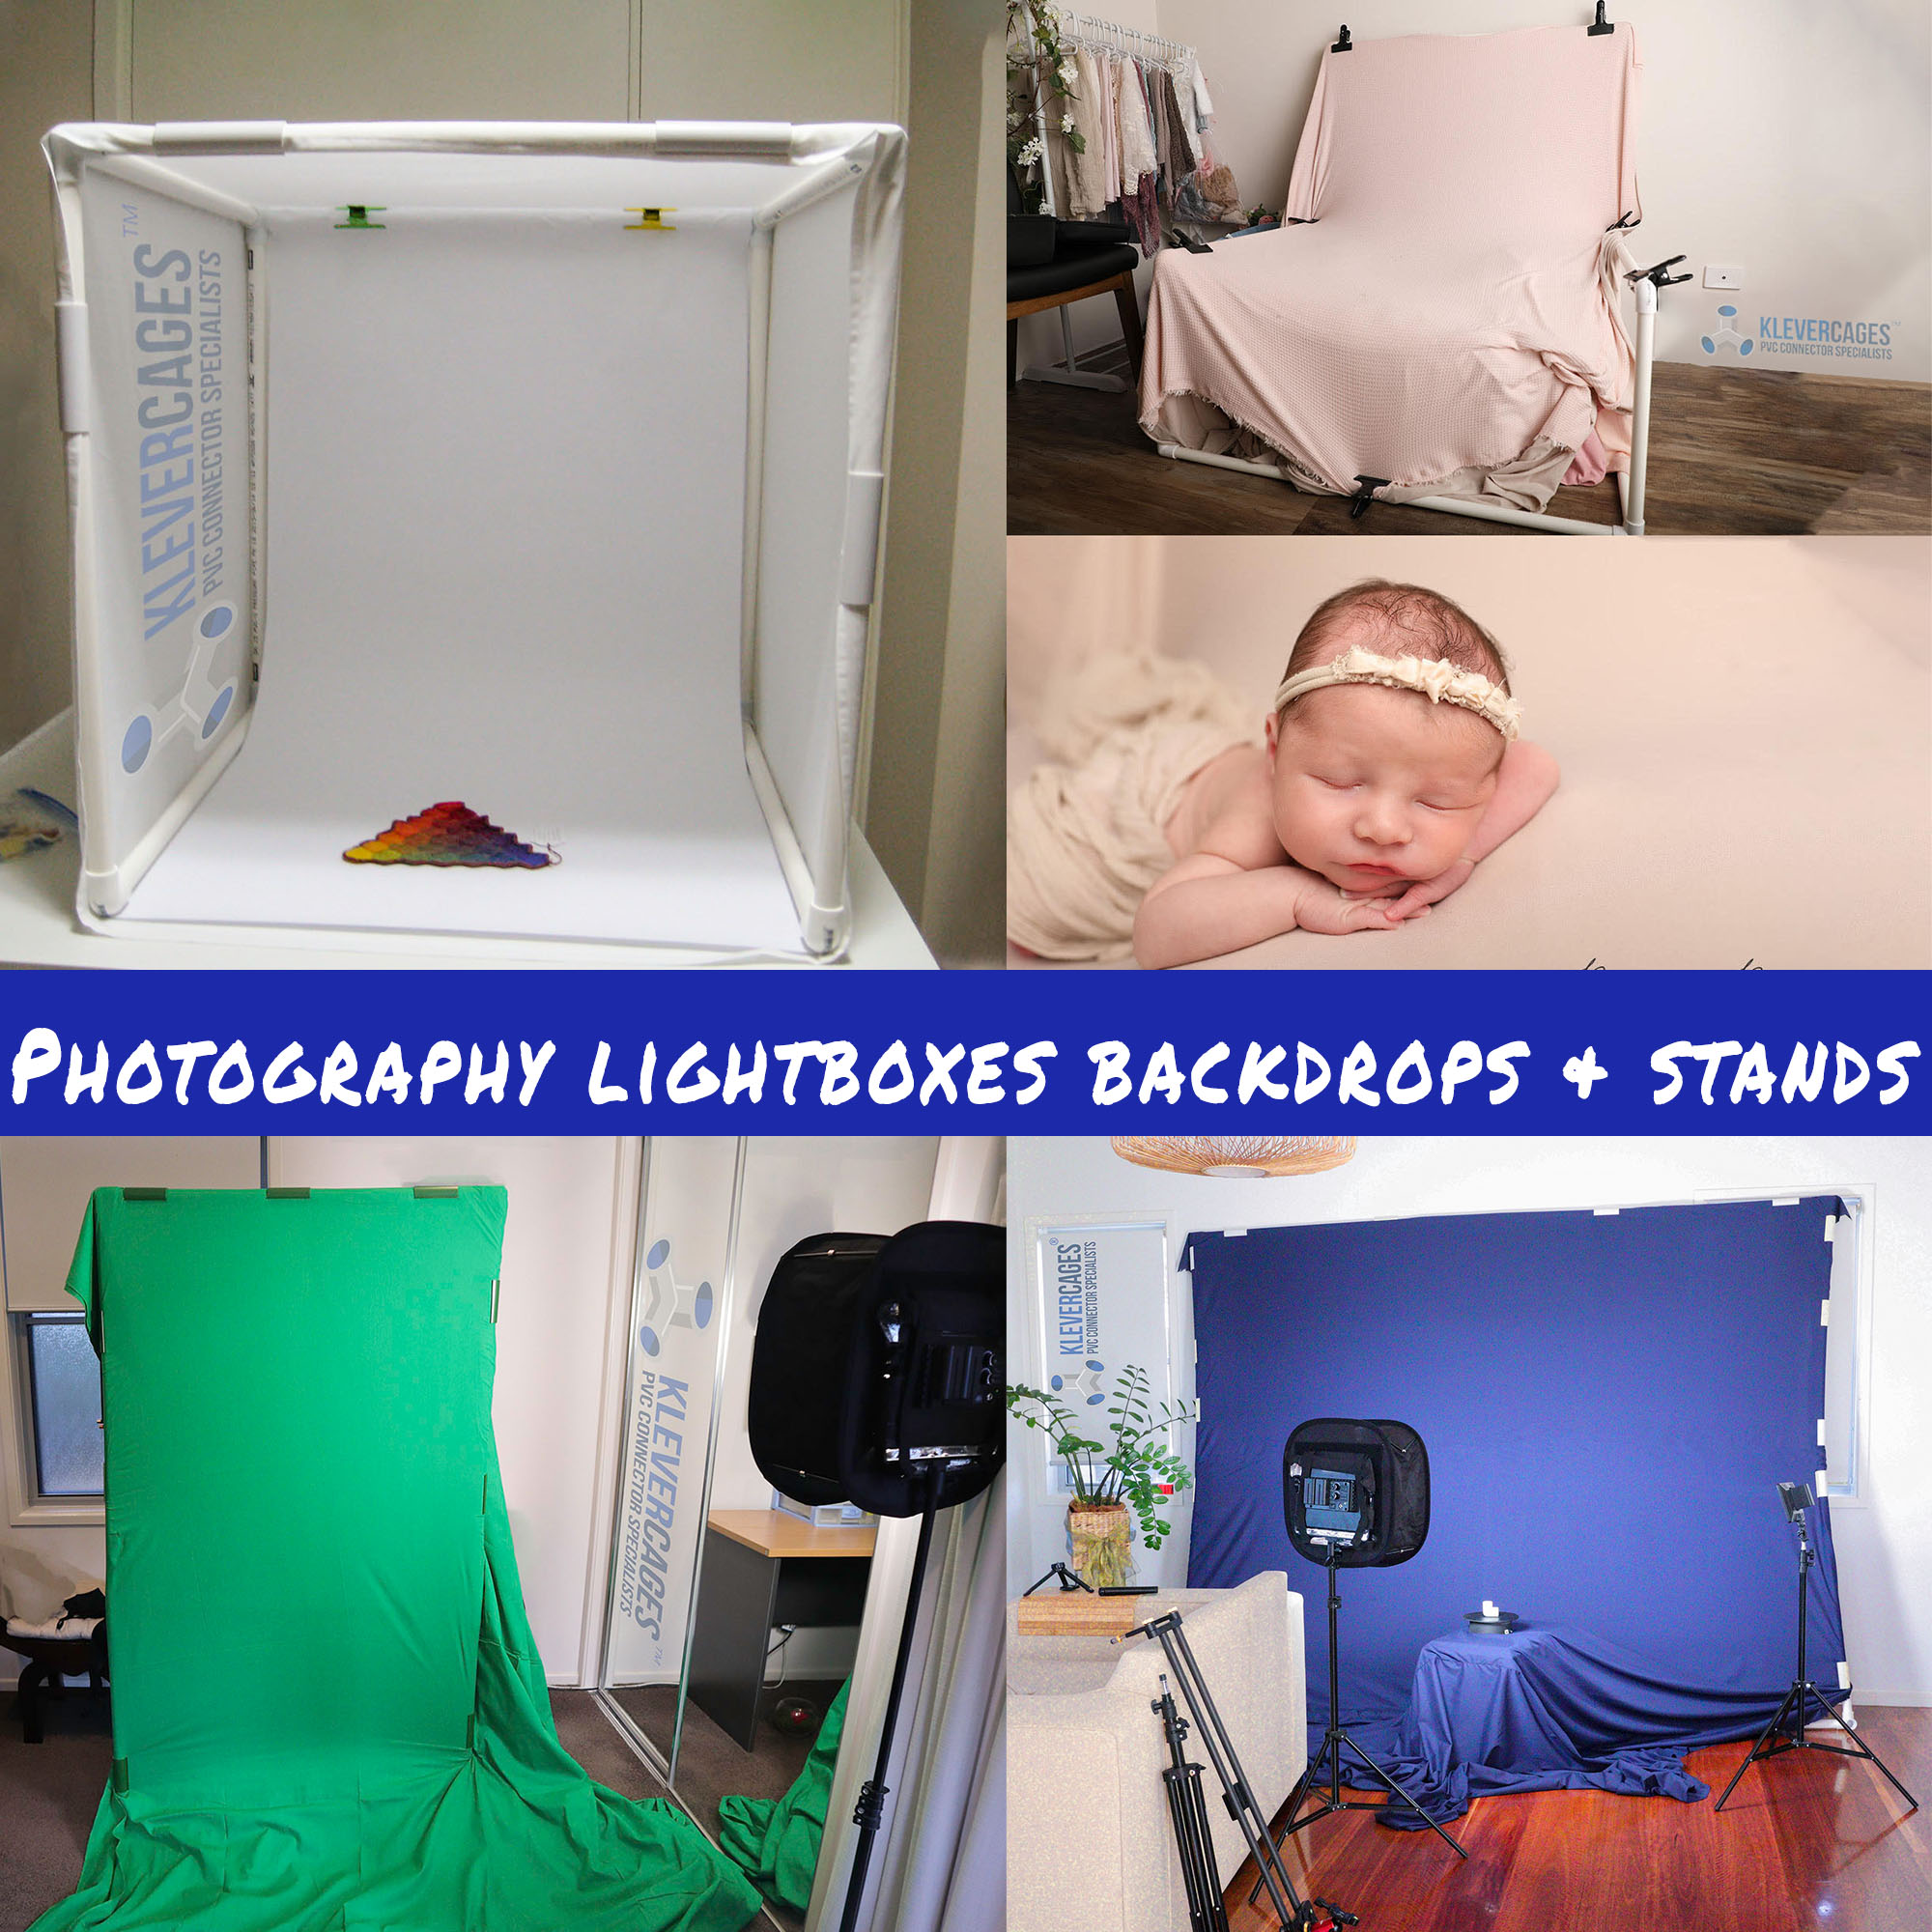 DIY custom design and build photography lightboxes, greenscreens, newborn stands and backdrops built with PVC fittings, connectors from Klever Cages